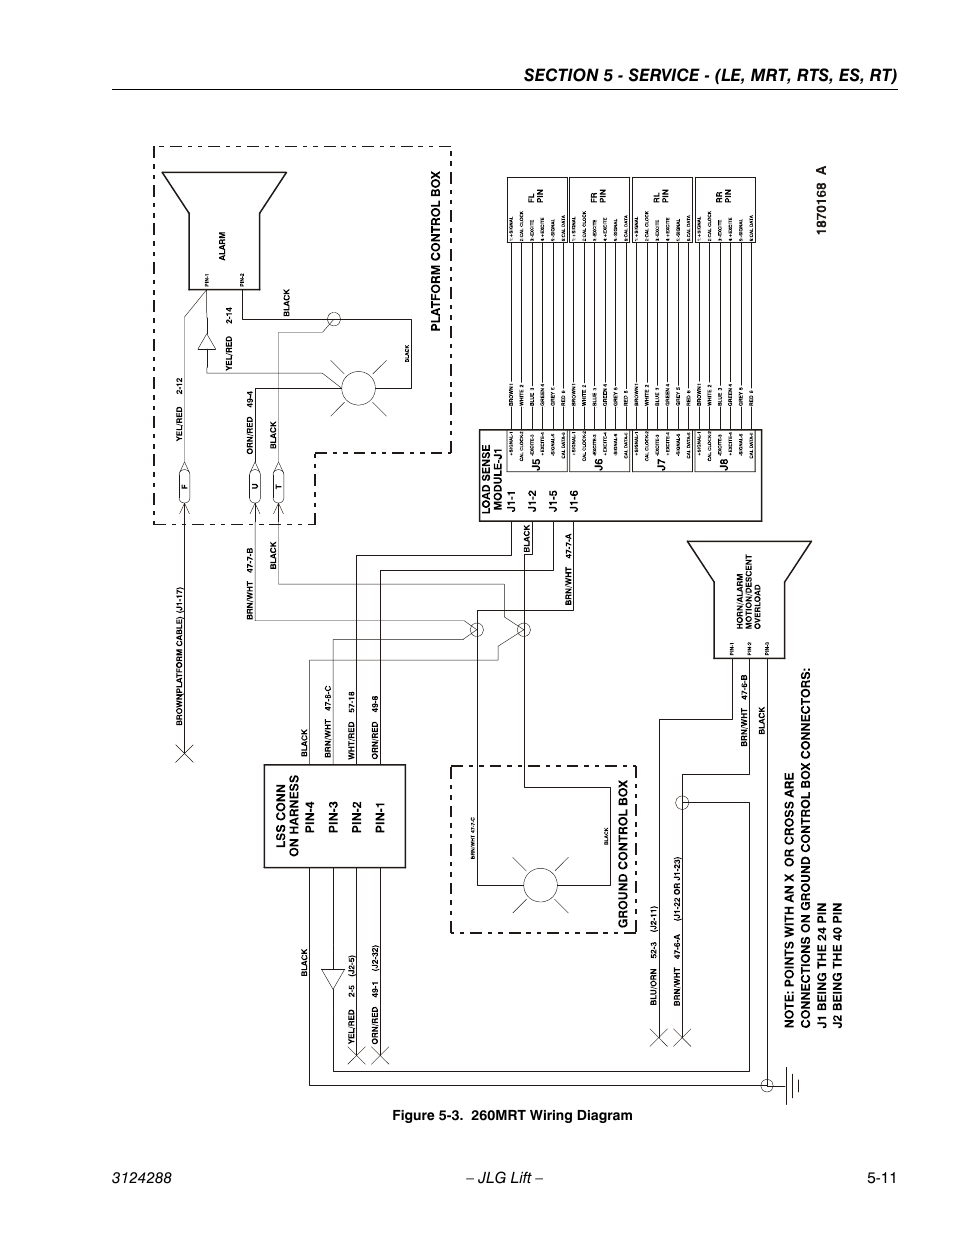 medium resolution of 260mrt wiring diagram 11 jlg lss scissors user manual page 47 78jlg wiring diagram 1